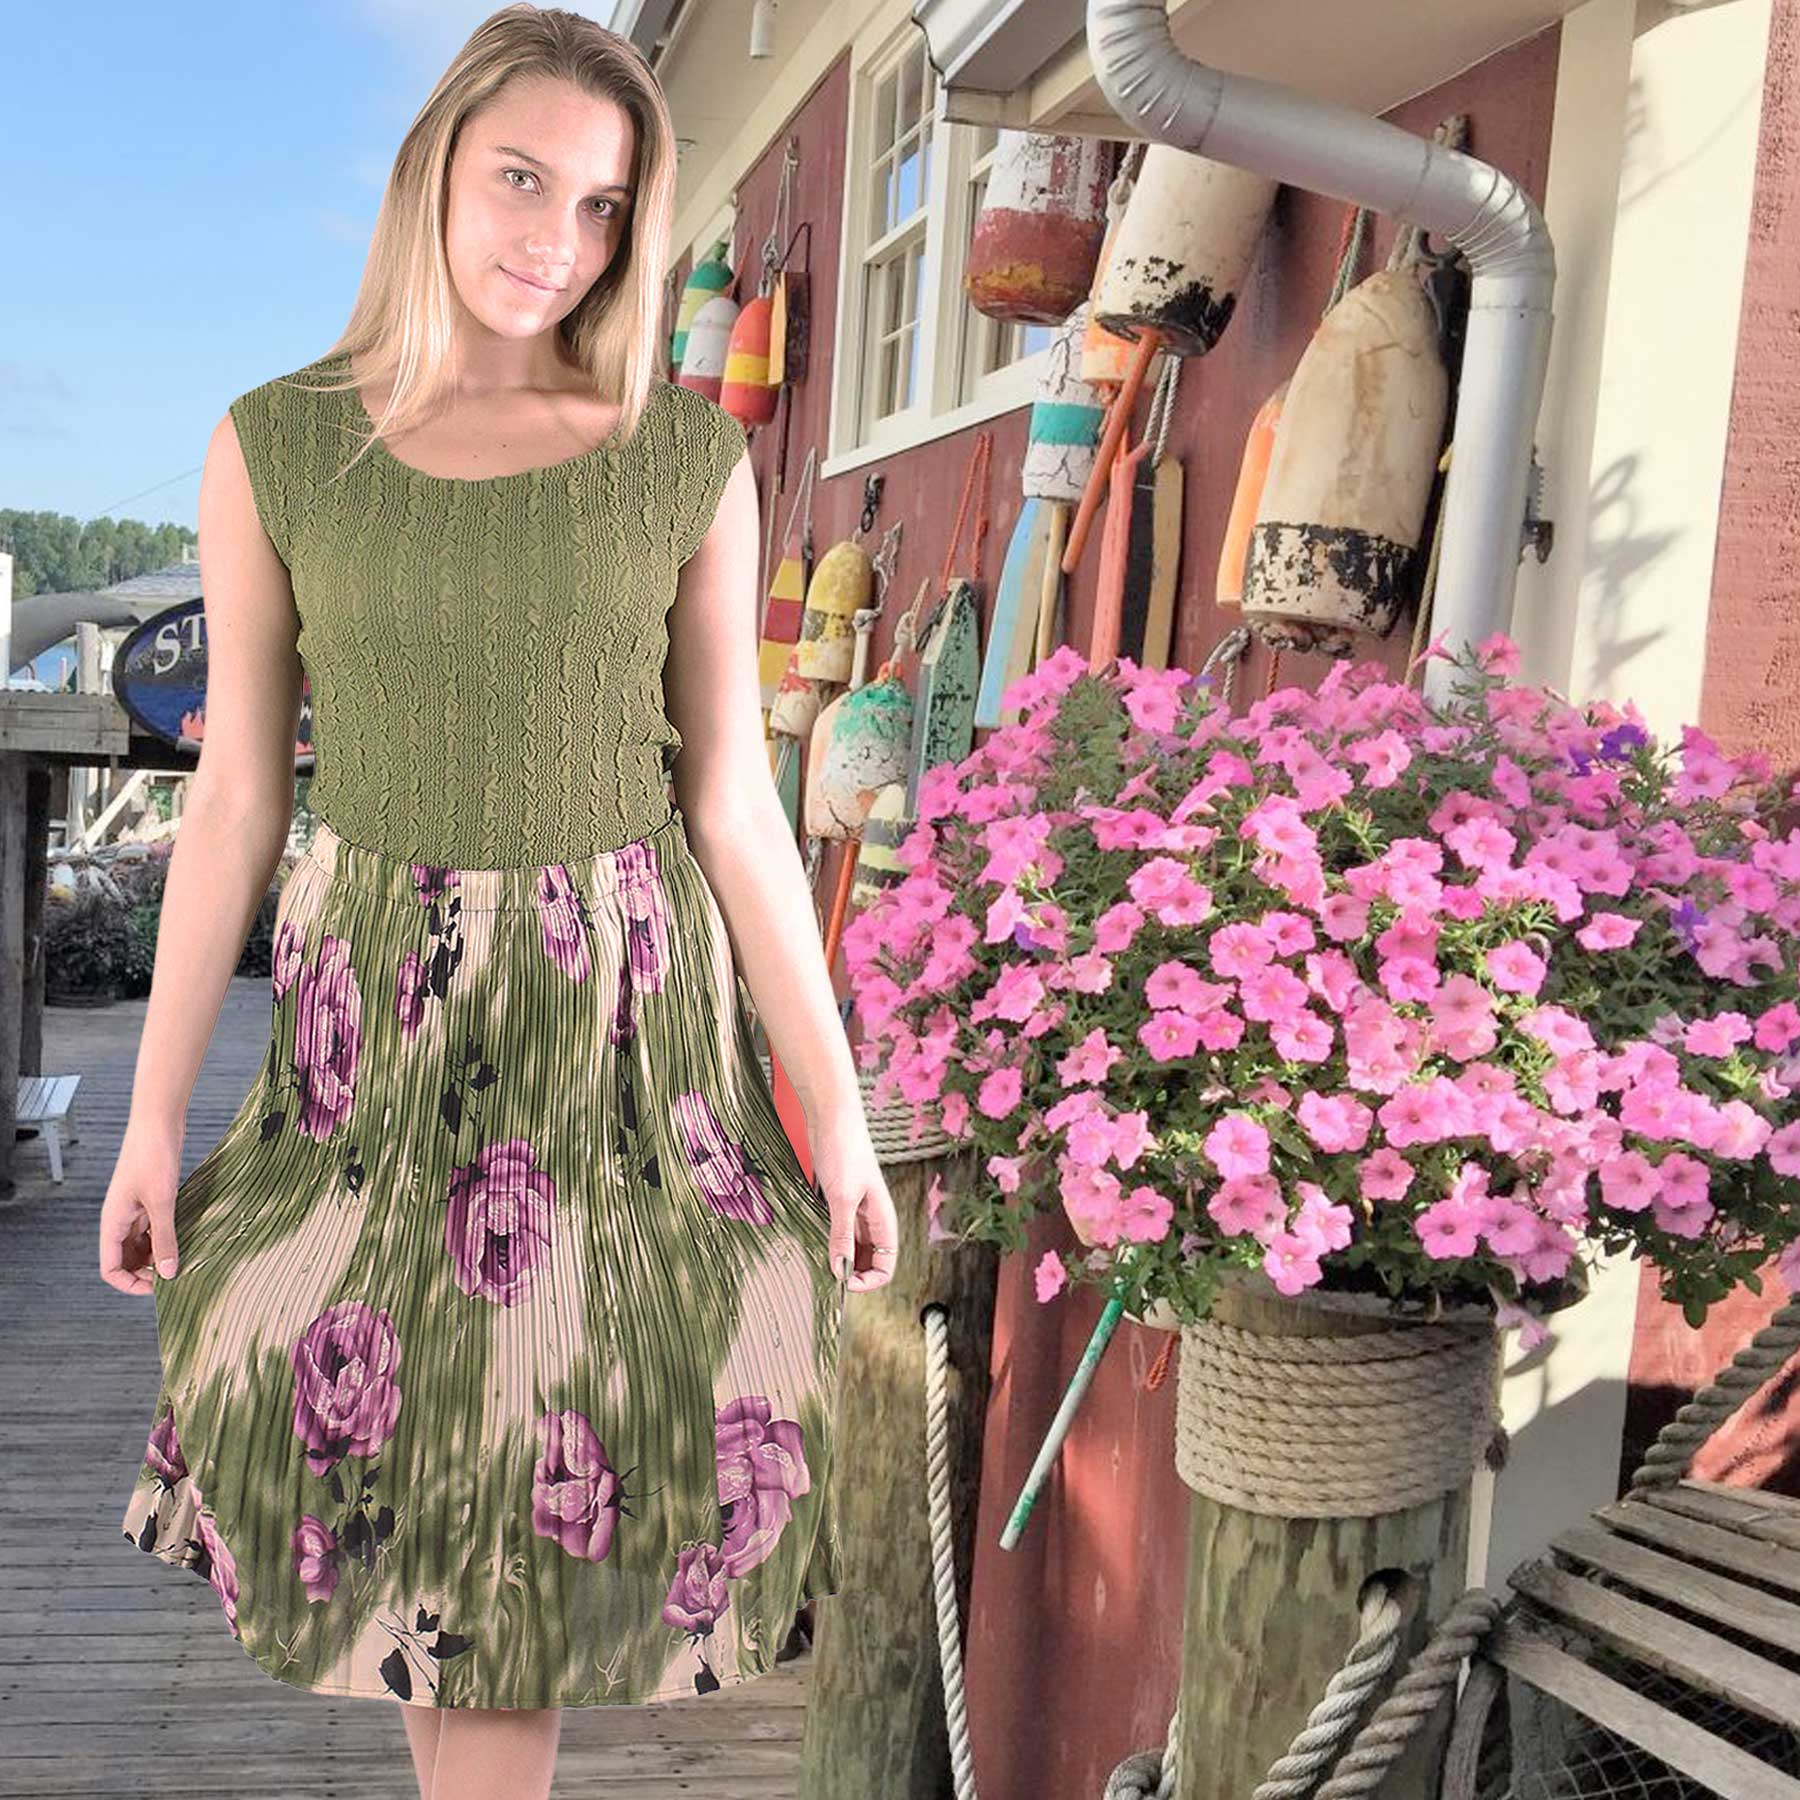 Skirts and Dresses for Summer